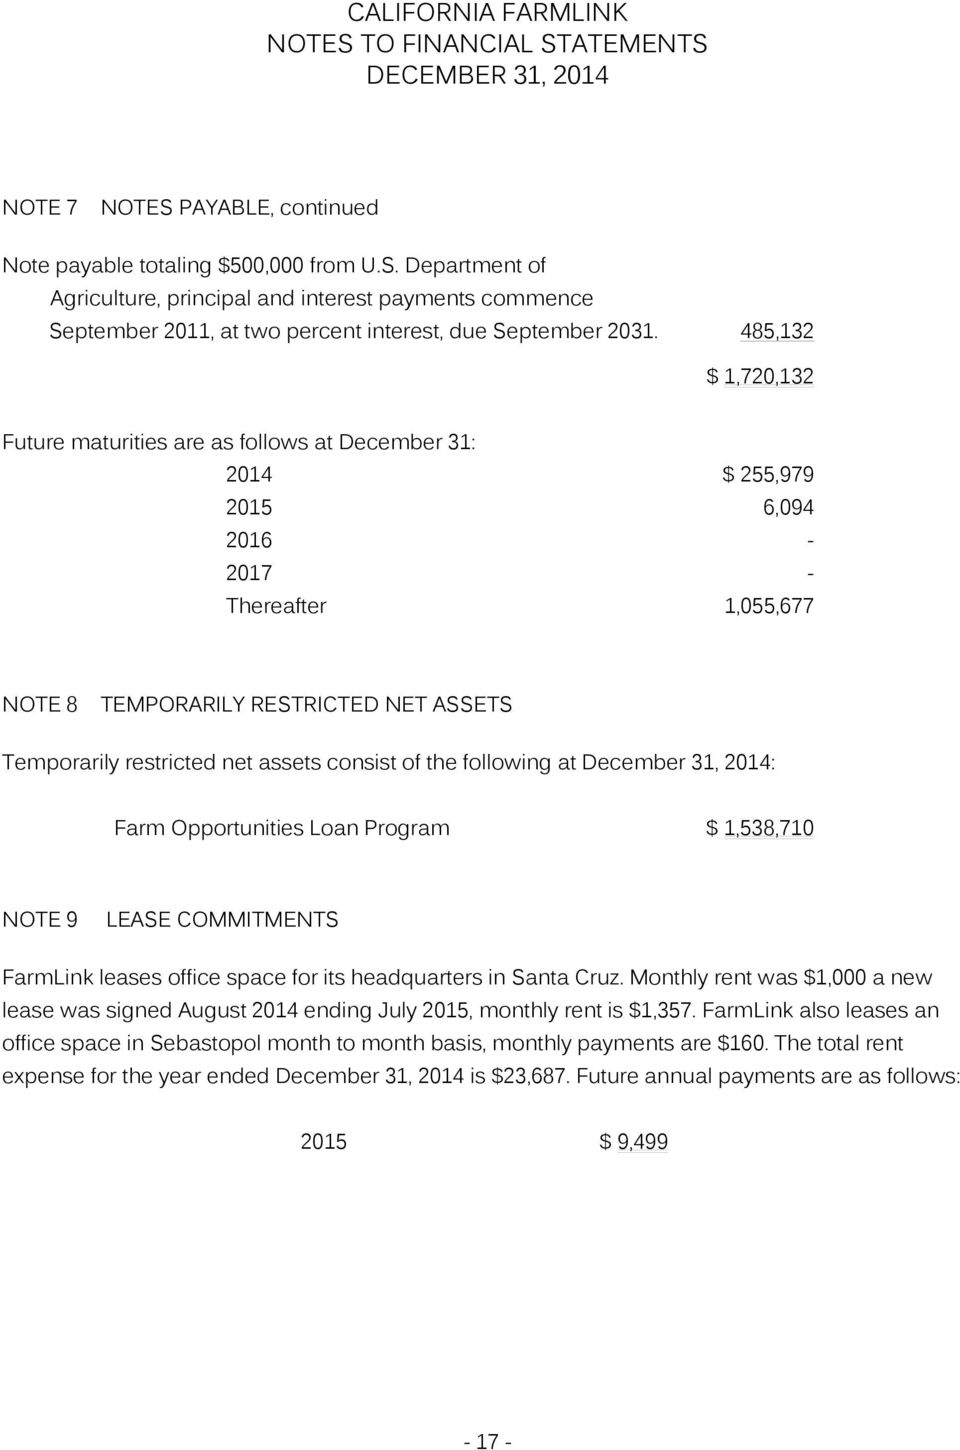 assets consist of the following at December 31, 2014: Farm Opportunities Loan Program $ 1,538,710 NOTE 9 LEASE COMMITMENTS FarmLink leases office space for its headquarters in Santa Cruz.